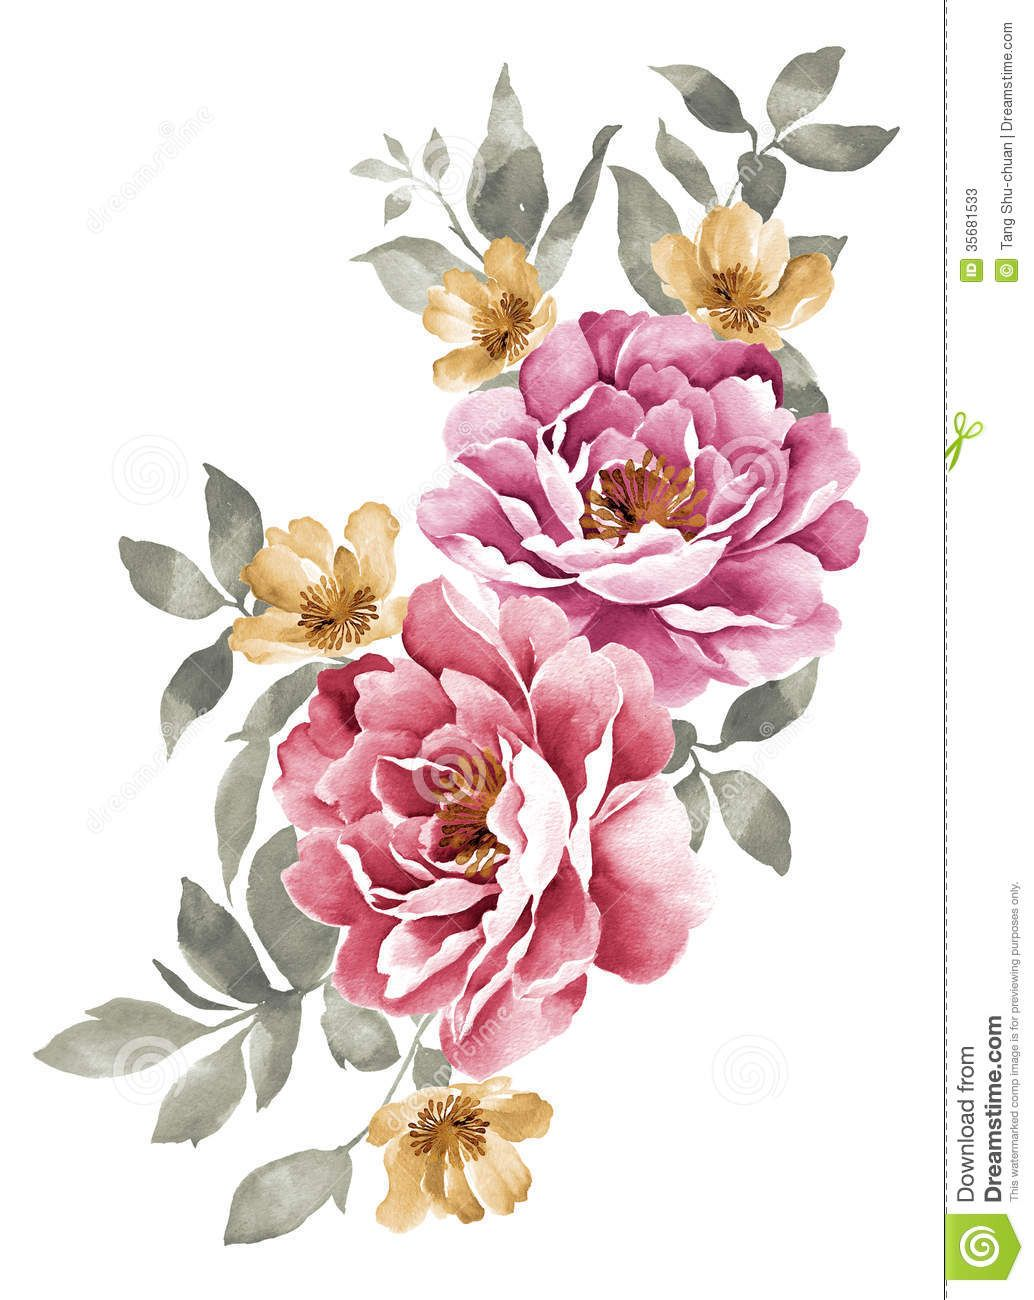 Watercolor illustration flowers buscar con google for Watercolor flower images